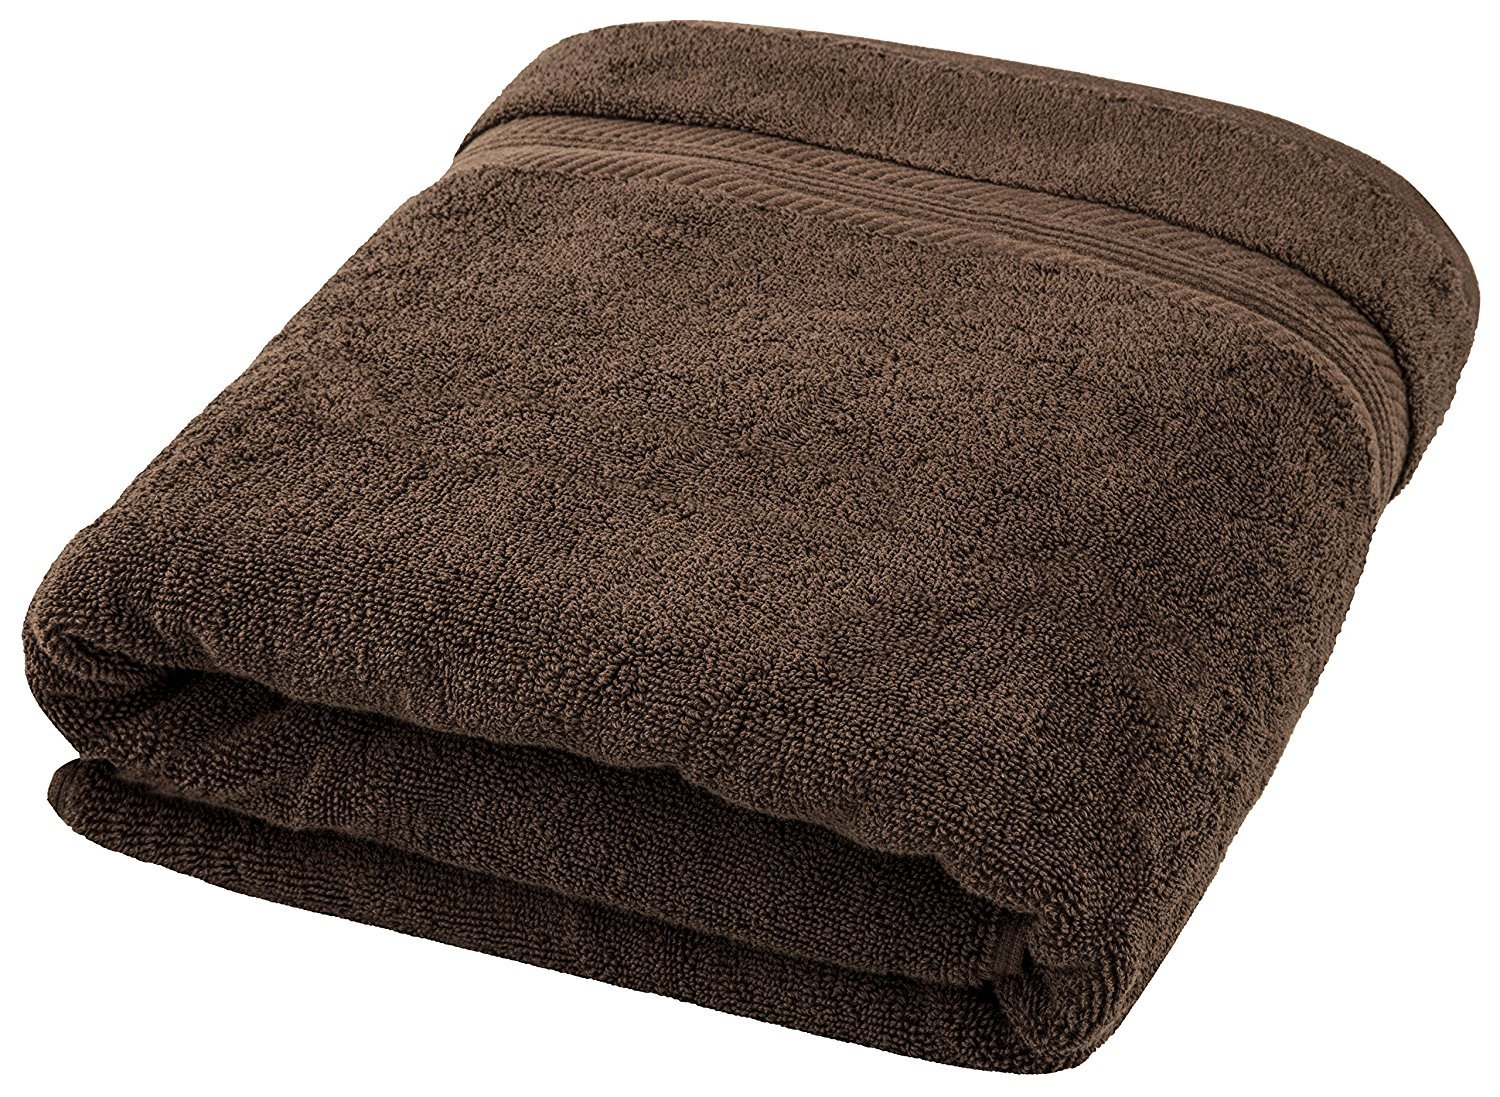 650 GSM Hotel and Spa Quality, 100% Ring Spun Genuine Cotton, Absorbent, Soft, Comfortable and Large (35x70 Inches) Bath Sheet for Home, Bathroom, Pool and Beach by MoonDeal, Brown